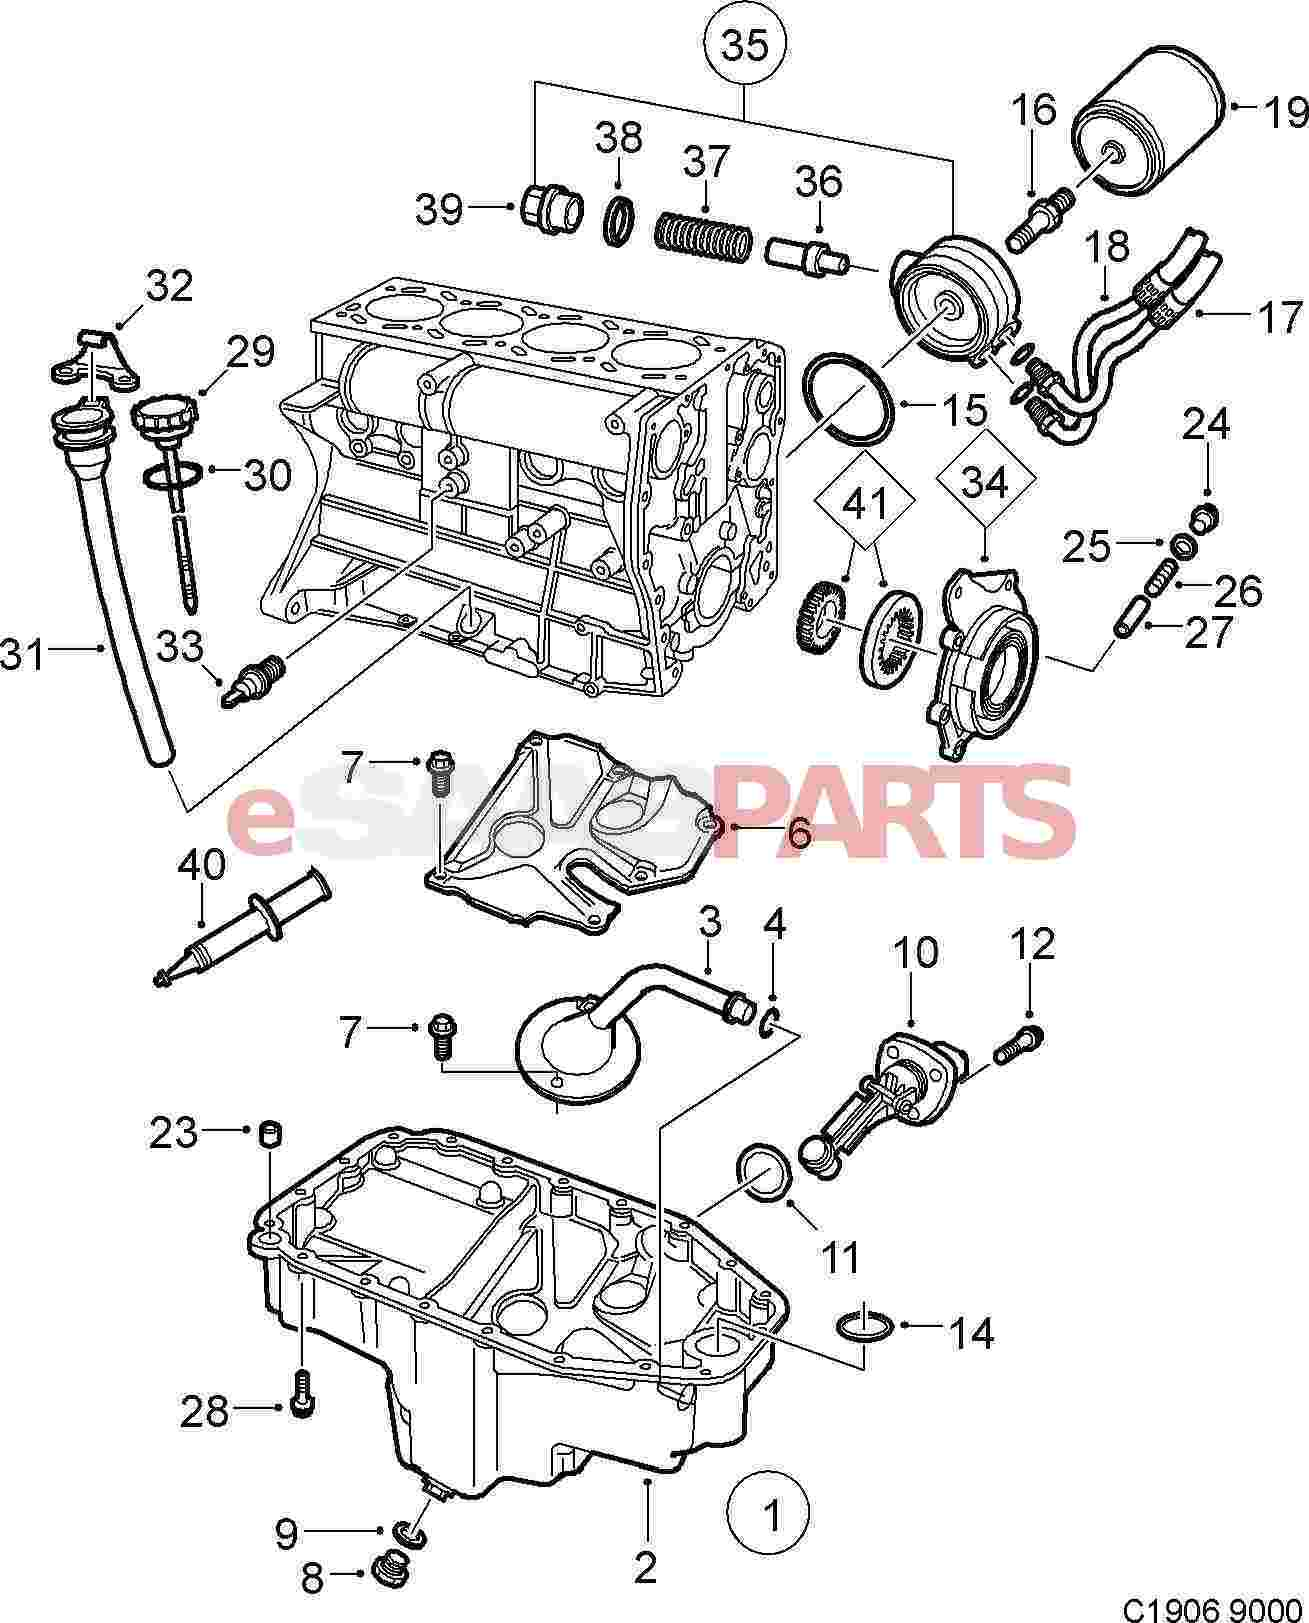 Saab 9000 Engine Diagram Experience Of Wiring Ford Cortina 9321779 Pump Kit Genuine Parts From Esaabparts Com Rh Audi S6